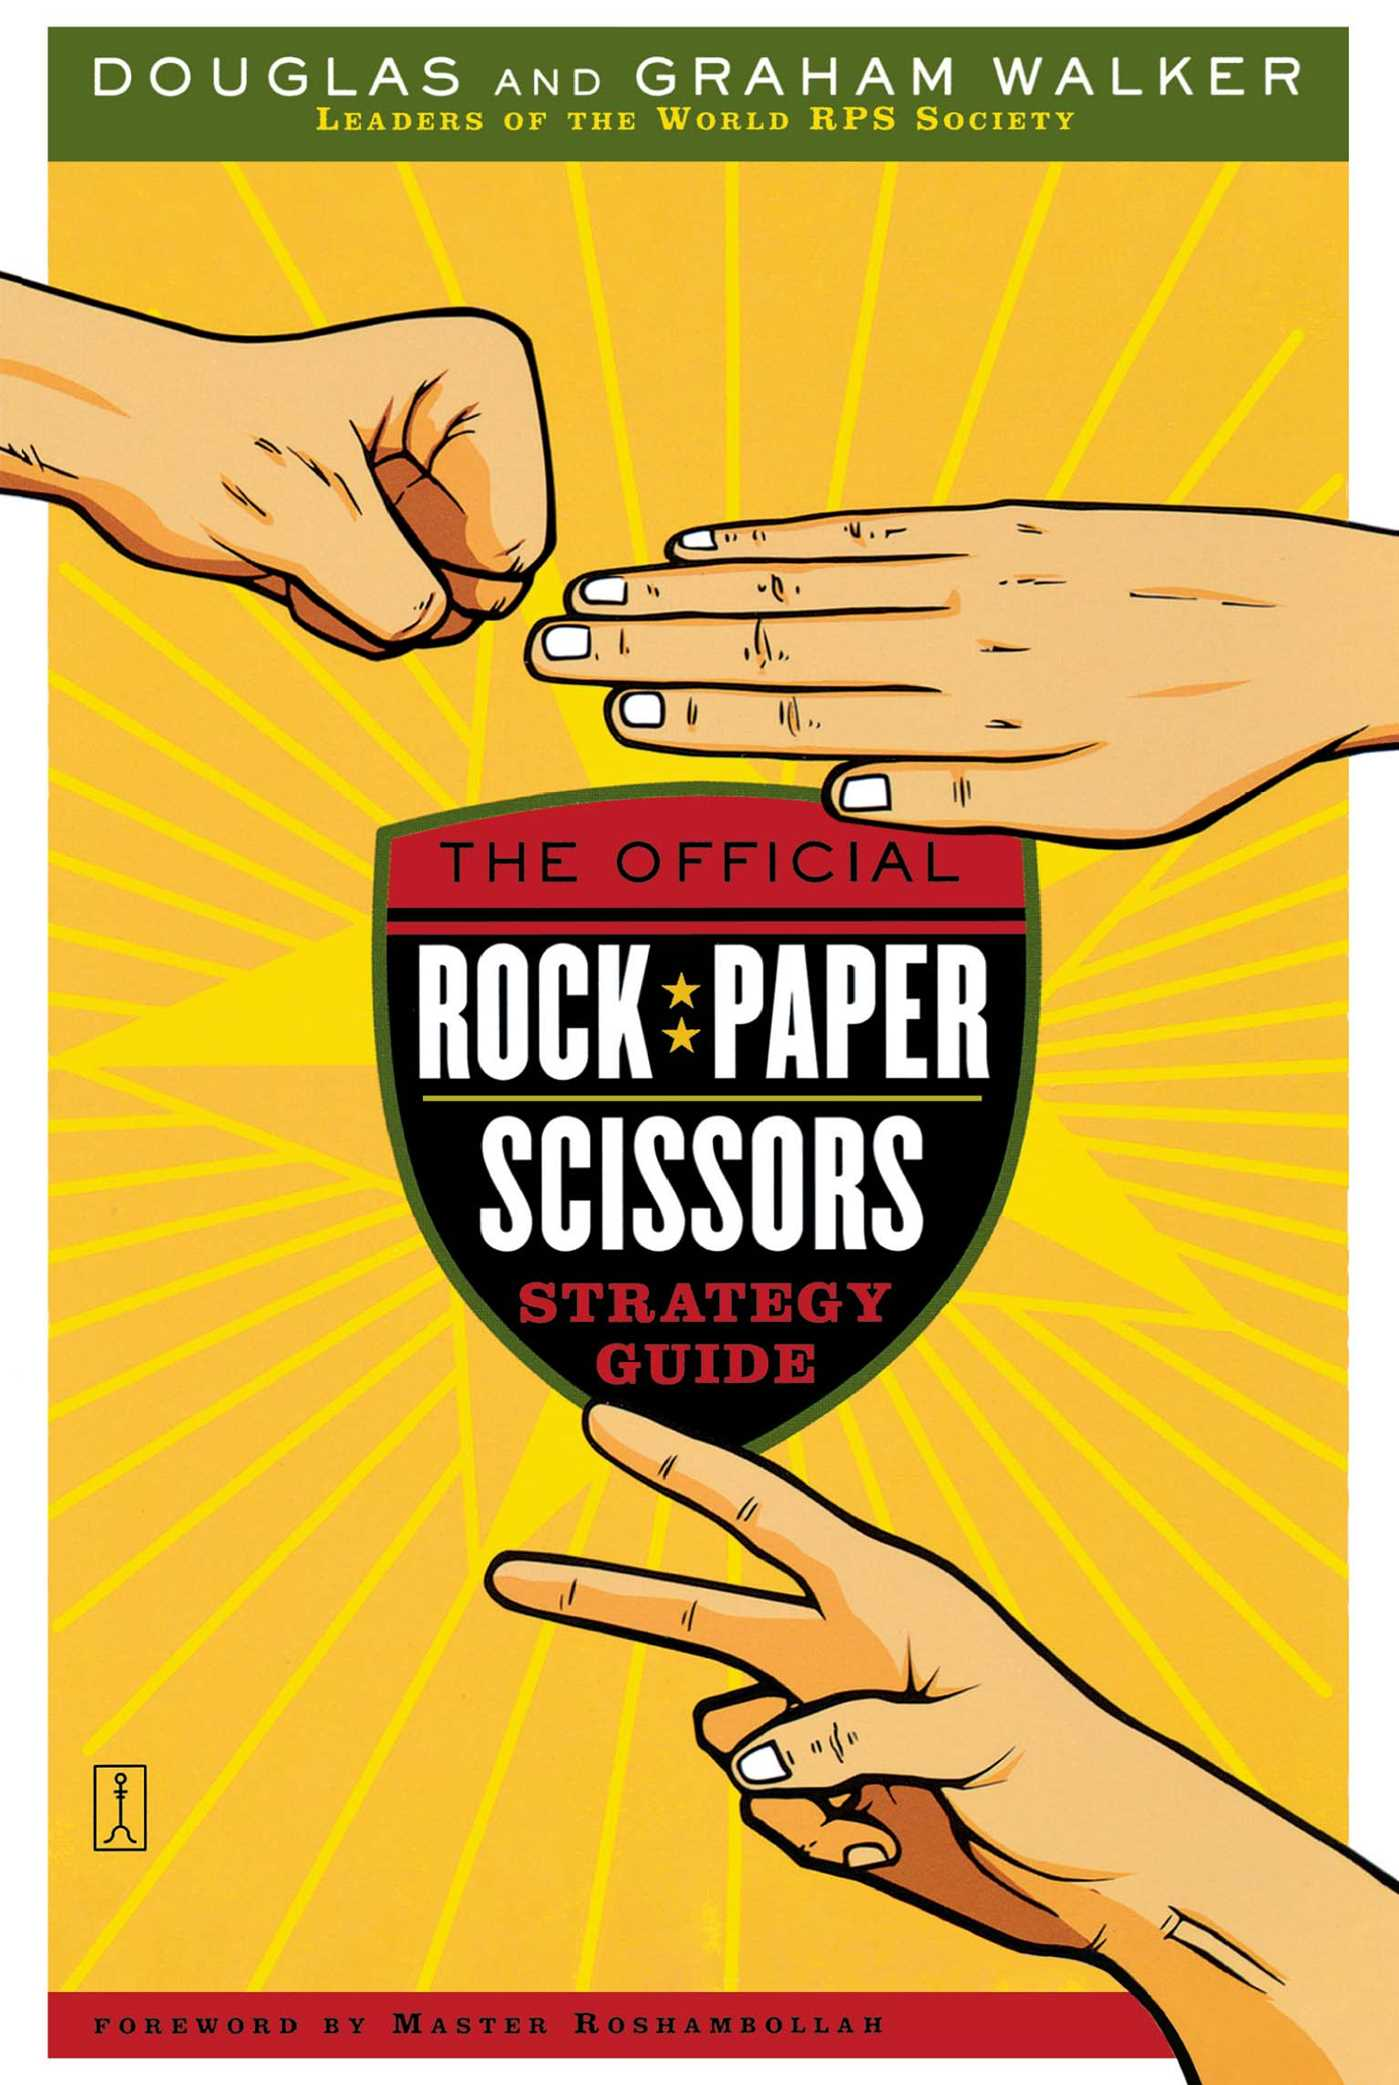 The official rock paper scissors strategy guide 9780743267519 hr